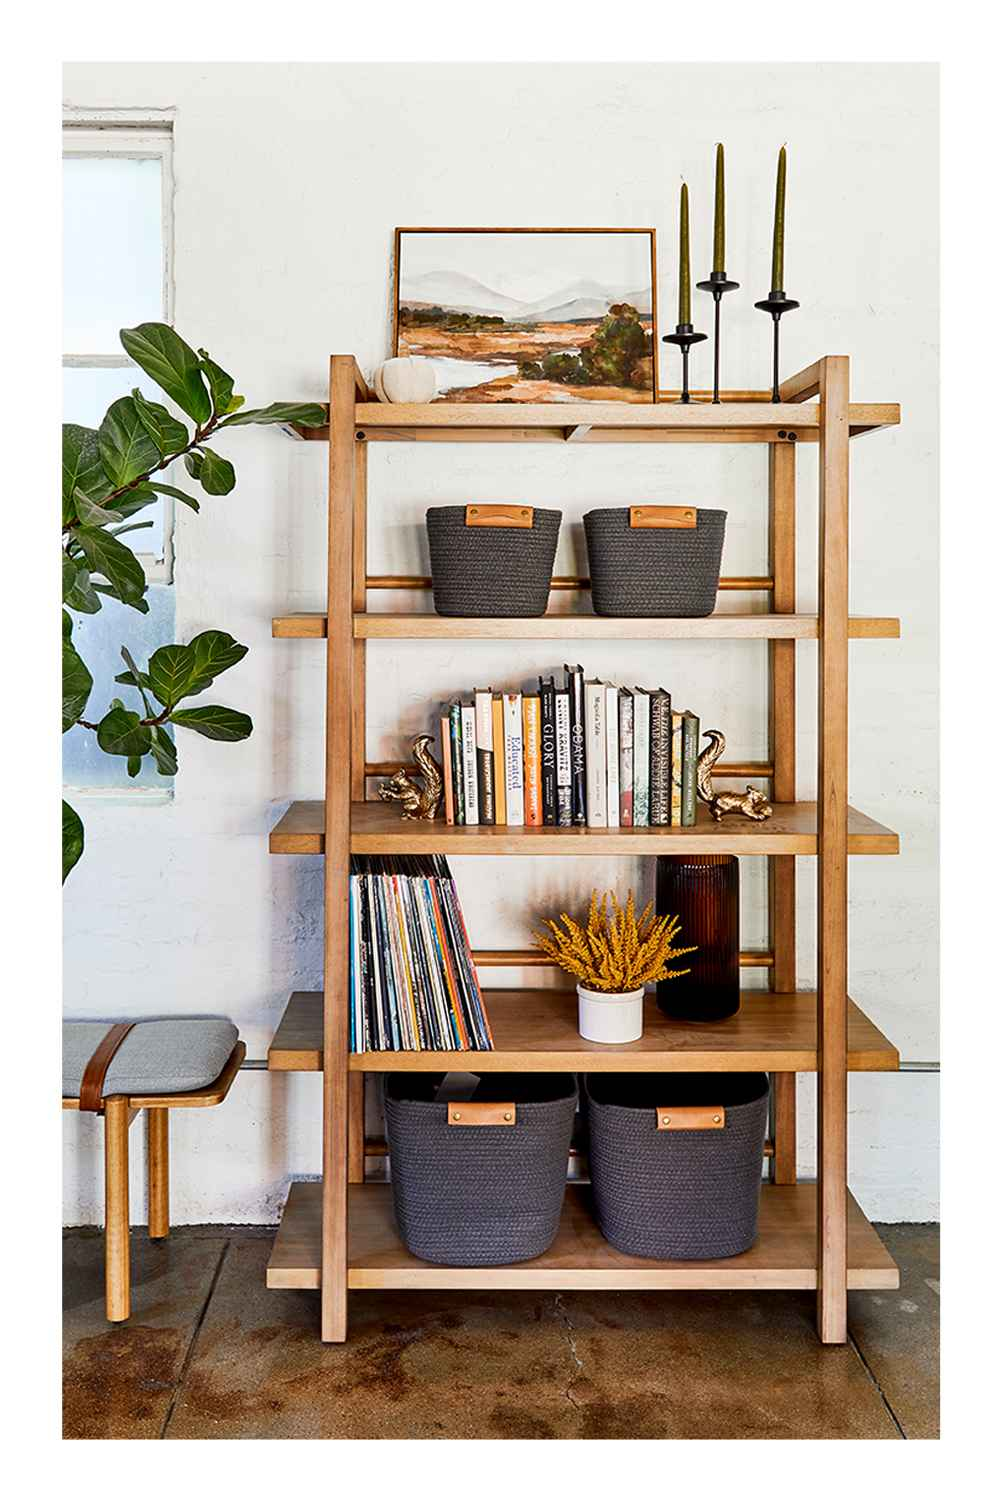 """68"""" Wide Wood 5 Shelf Bookcase Natural - Threshold™, 11""""x4"""" Set of 3 Tapers Metal Candle Holder Black - Threshold™, 20"""" x 16"""" Mountains Framed Wall Canvas - Threshold™, 4"""" x 4"""" Fabric Pumpkin Figurine Cream - Threshold™, 6.6"""" x 5.5"""" Rolling Harvest Squirrel Figurine Gold - Threshold™, 11"""" Medium Coiled Rope Basket Gray Charcoal - Threshold™, 13"""" Medium Coiled Rope Basket Gray Charcoal - Threshold™, Evertson Modern Strap Bench Gray - Project 62™, 36"""" x 18"""" Artificial Monstera Plant in Ceramic Planter White - LCG Florals"""